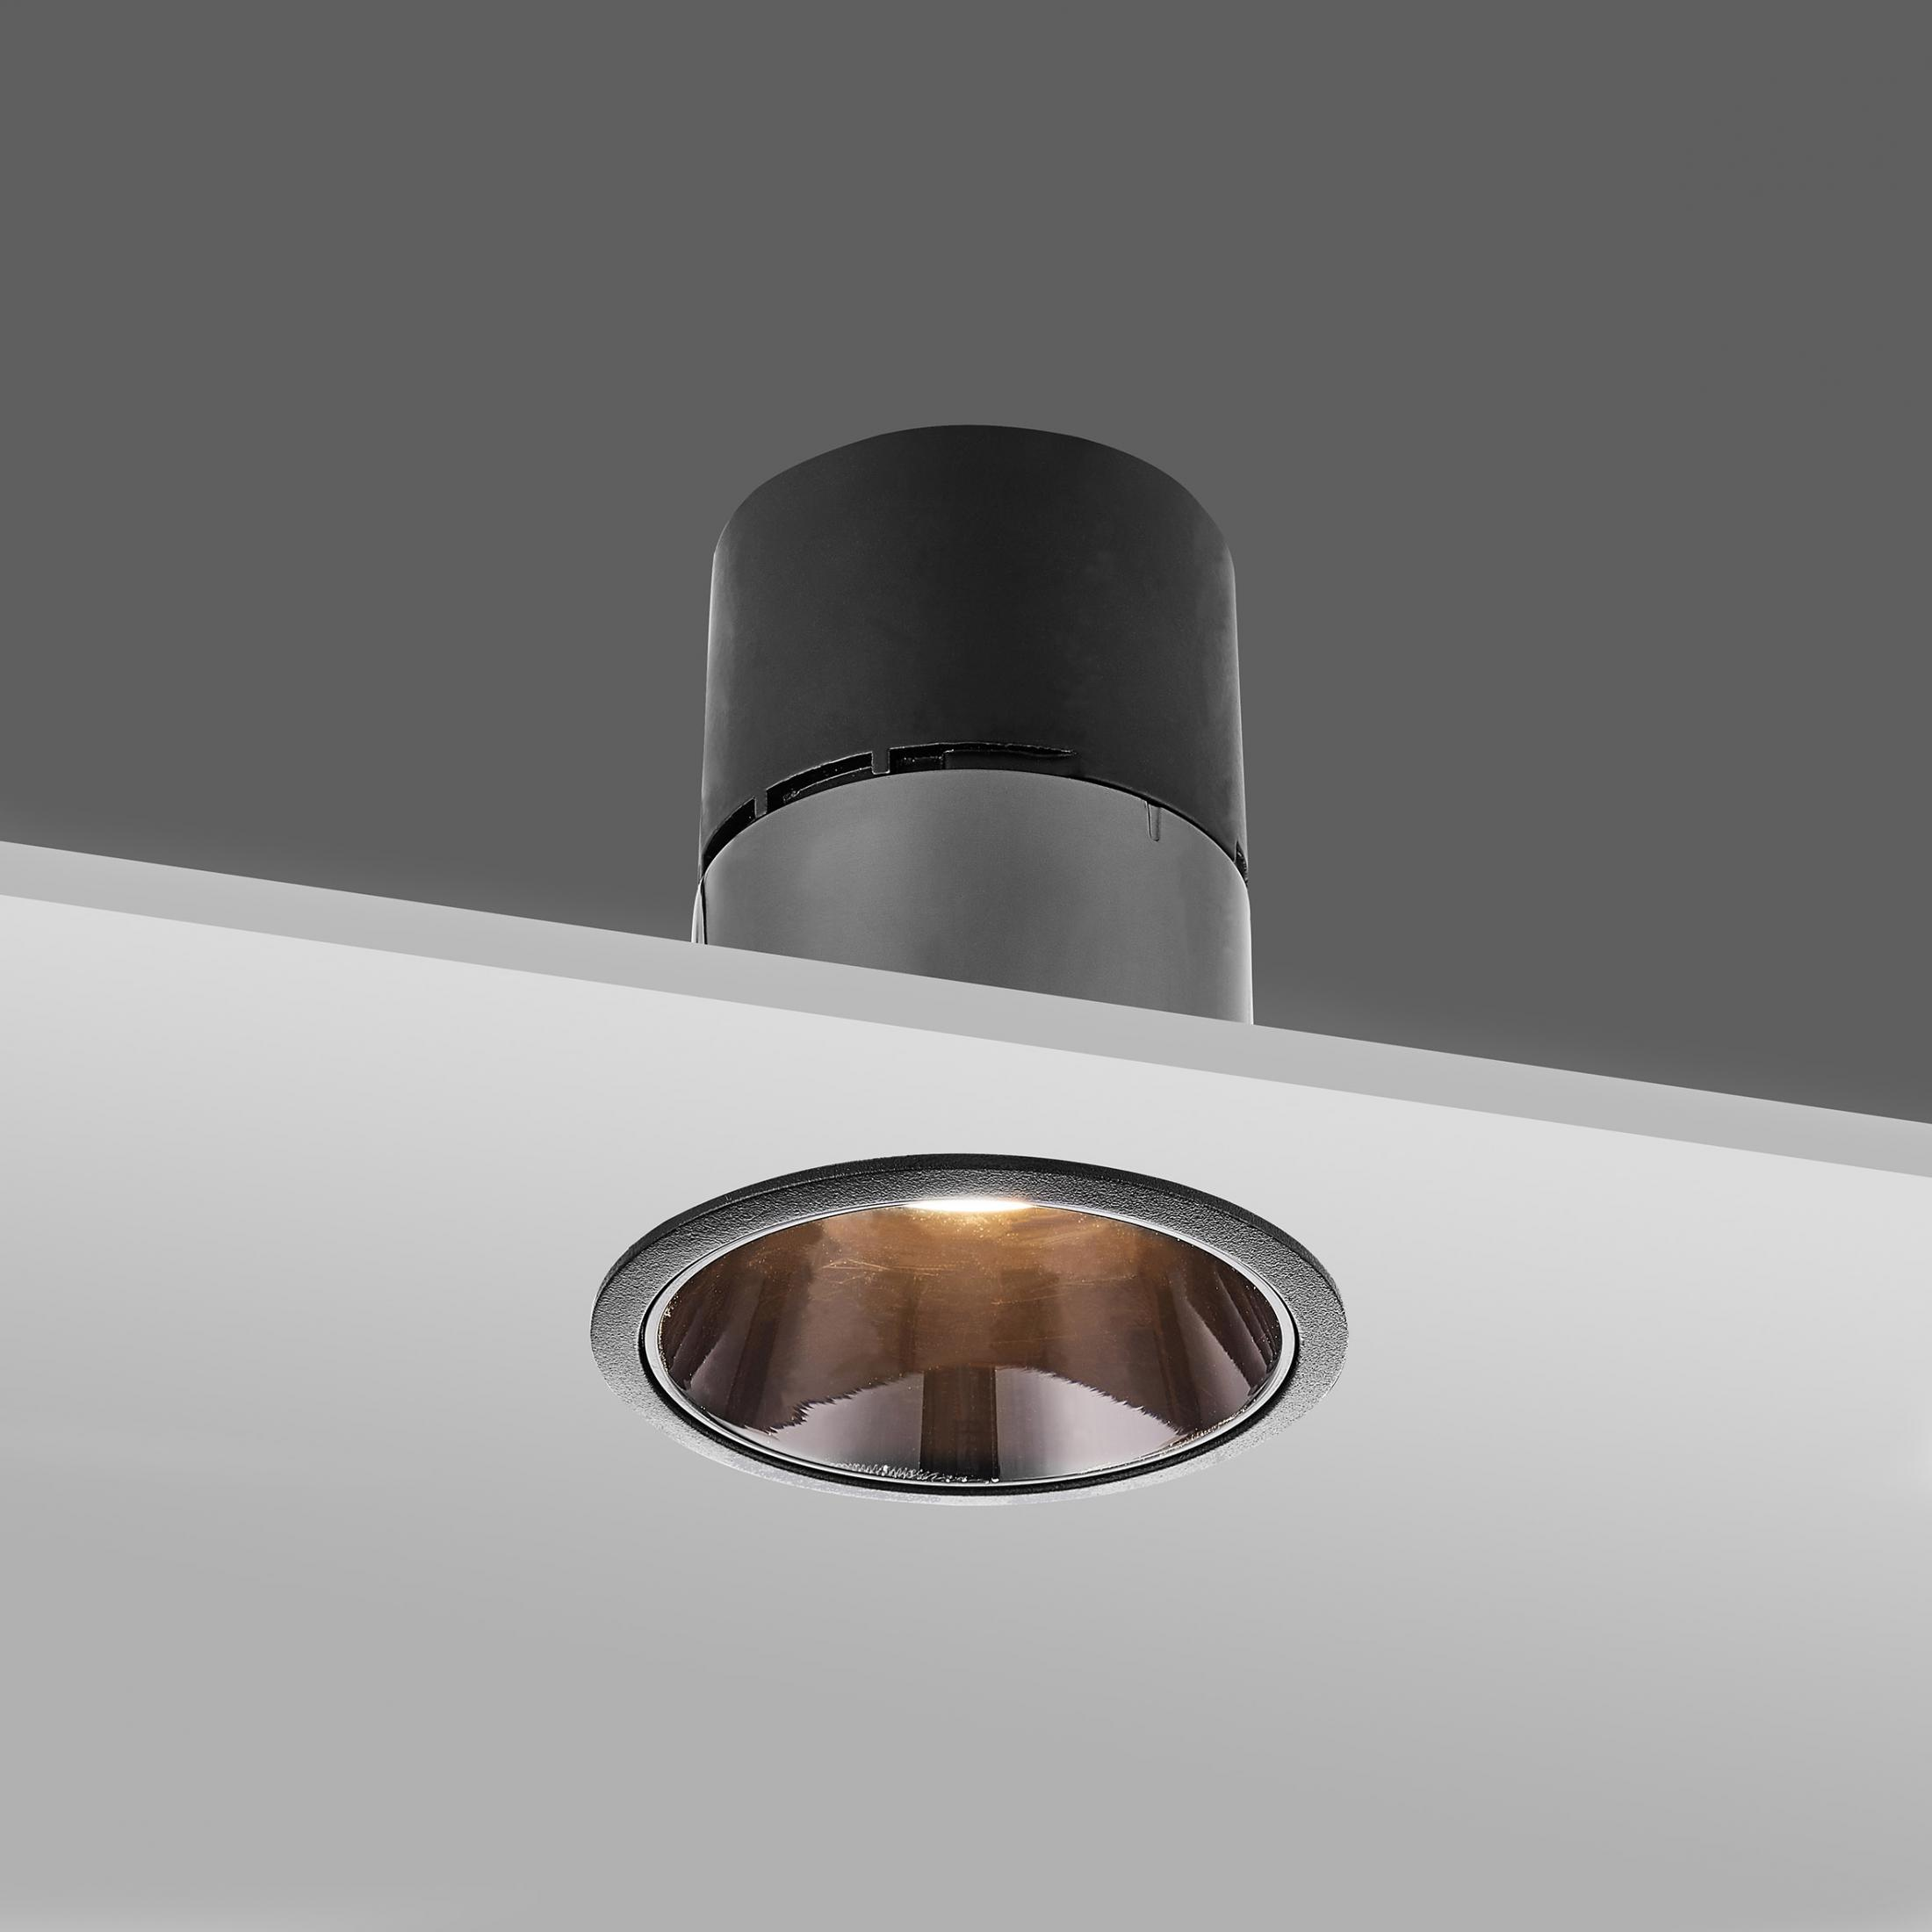 Interior recessed ceiling downlight